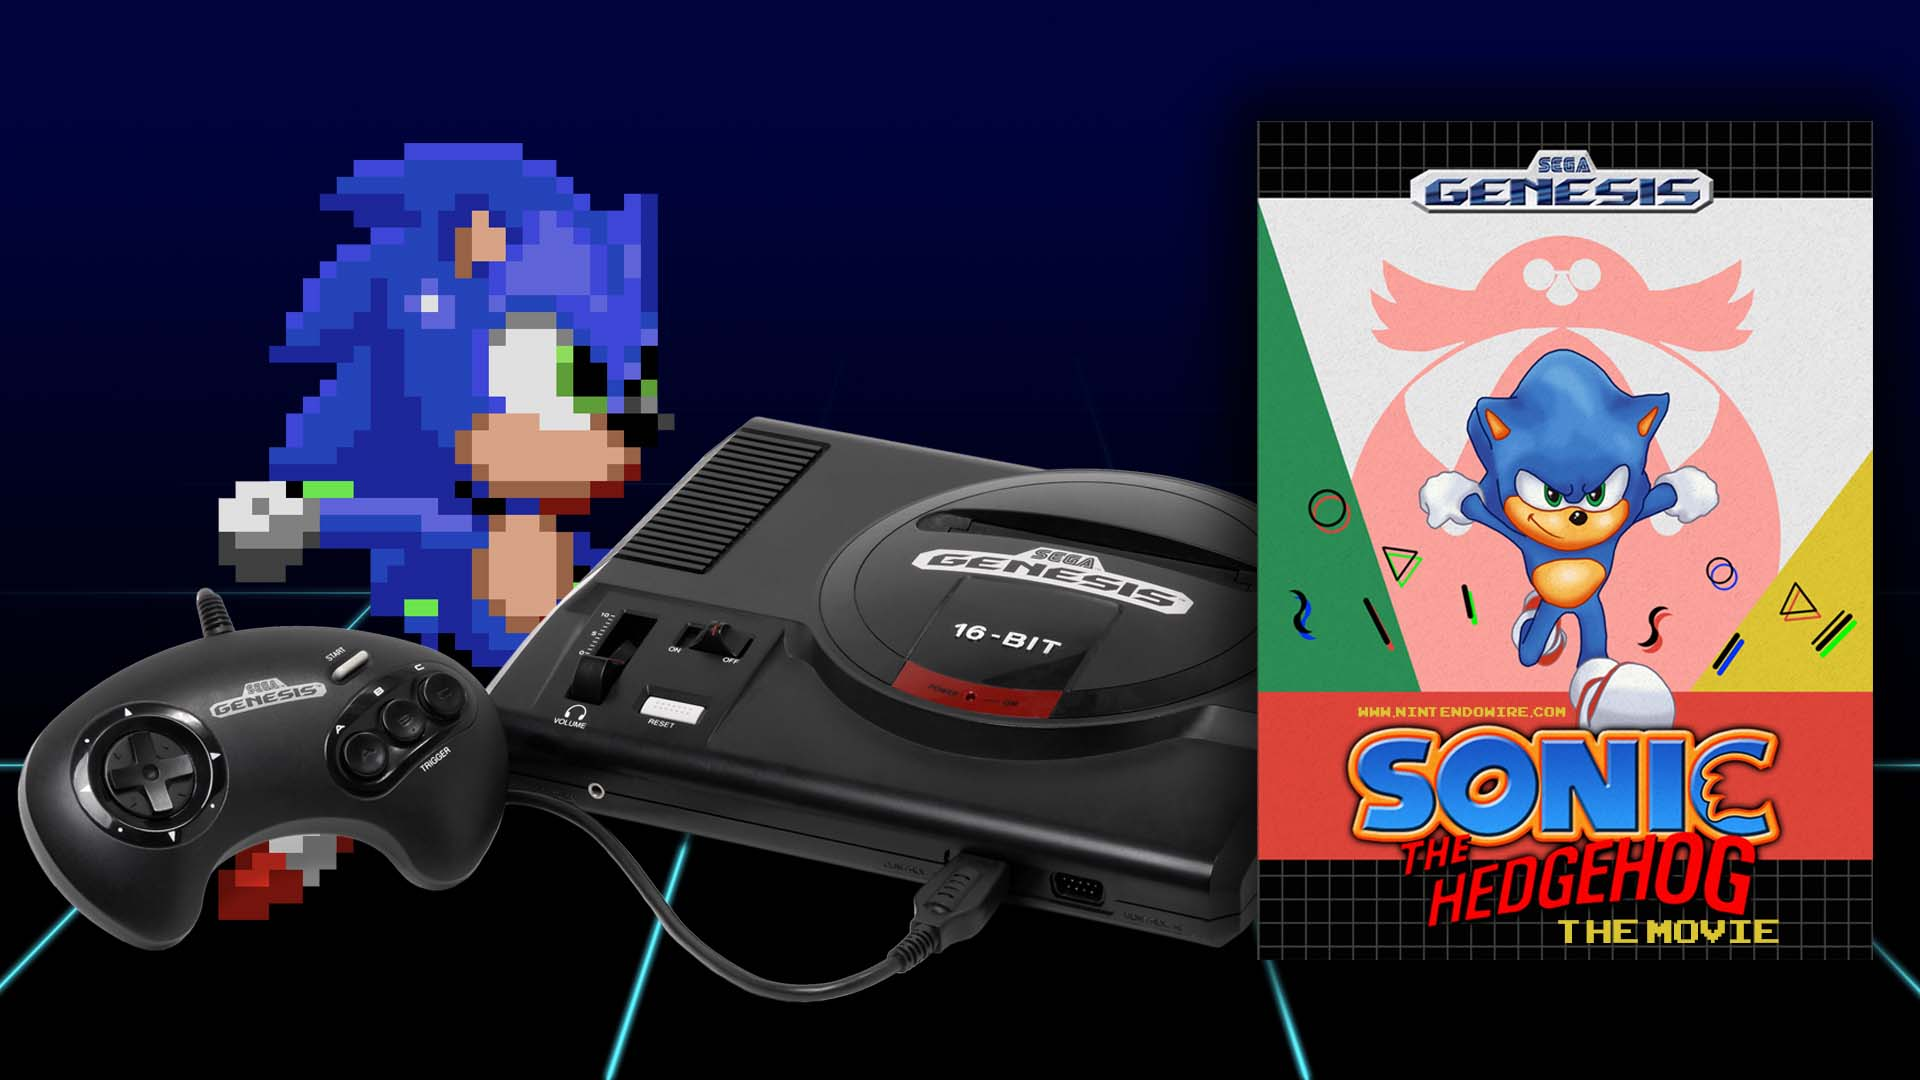 Sonic The Hedgehog The Movie Sega Genesis De Make Nintendo Wire